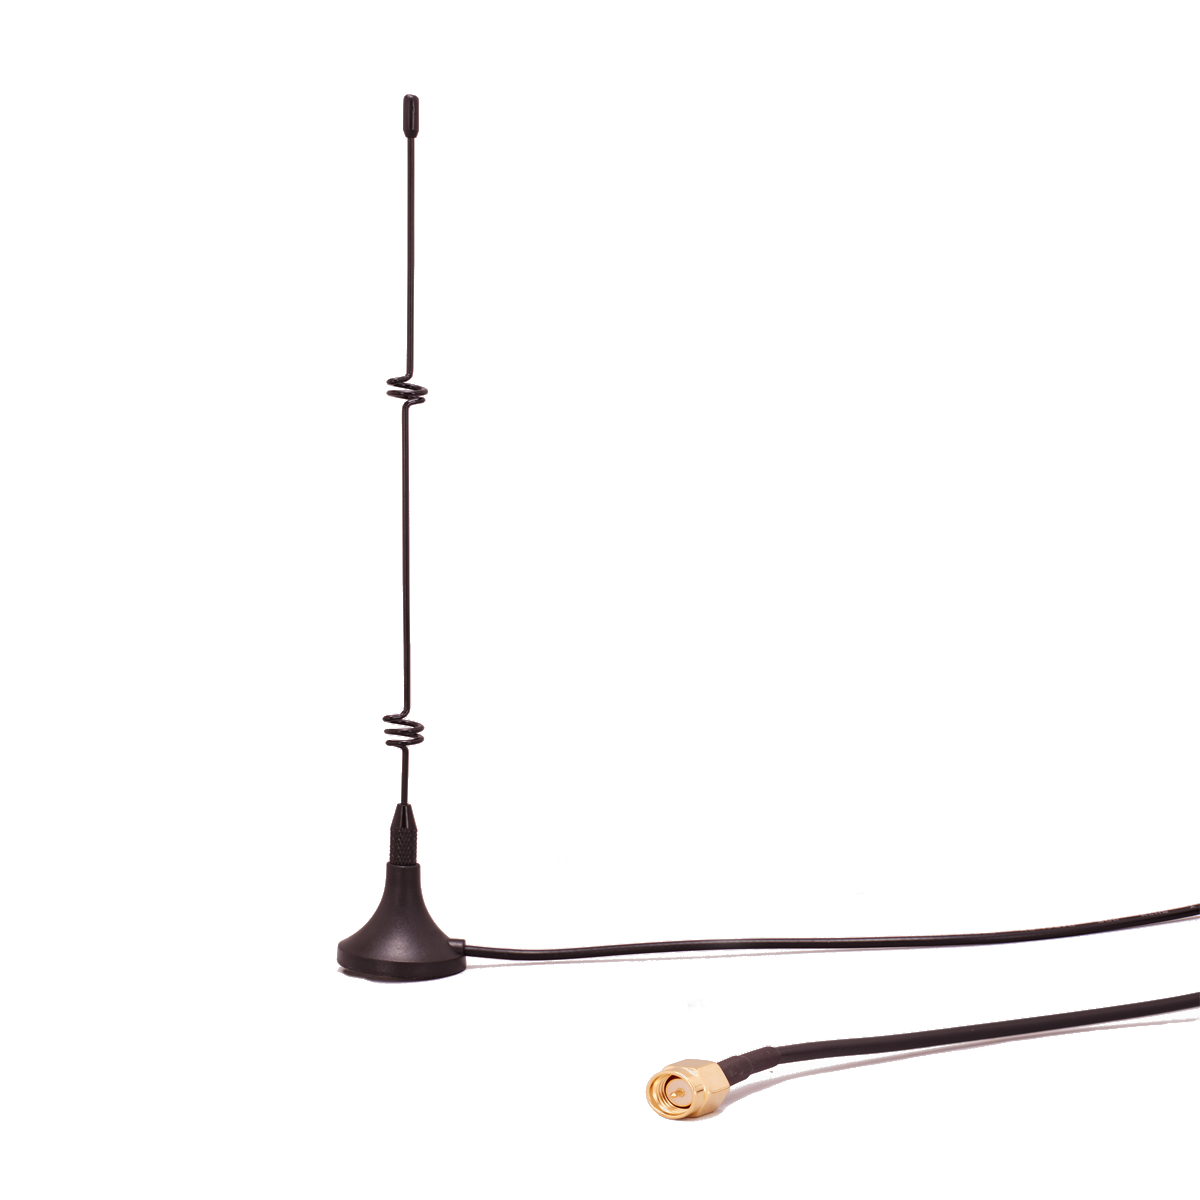 GSM Antenna - High Strength 3 - 5dBi - Magnetic base